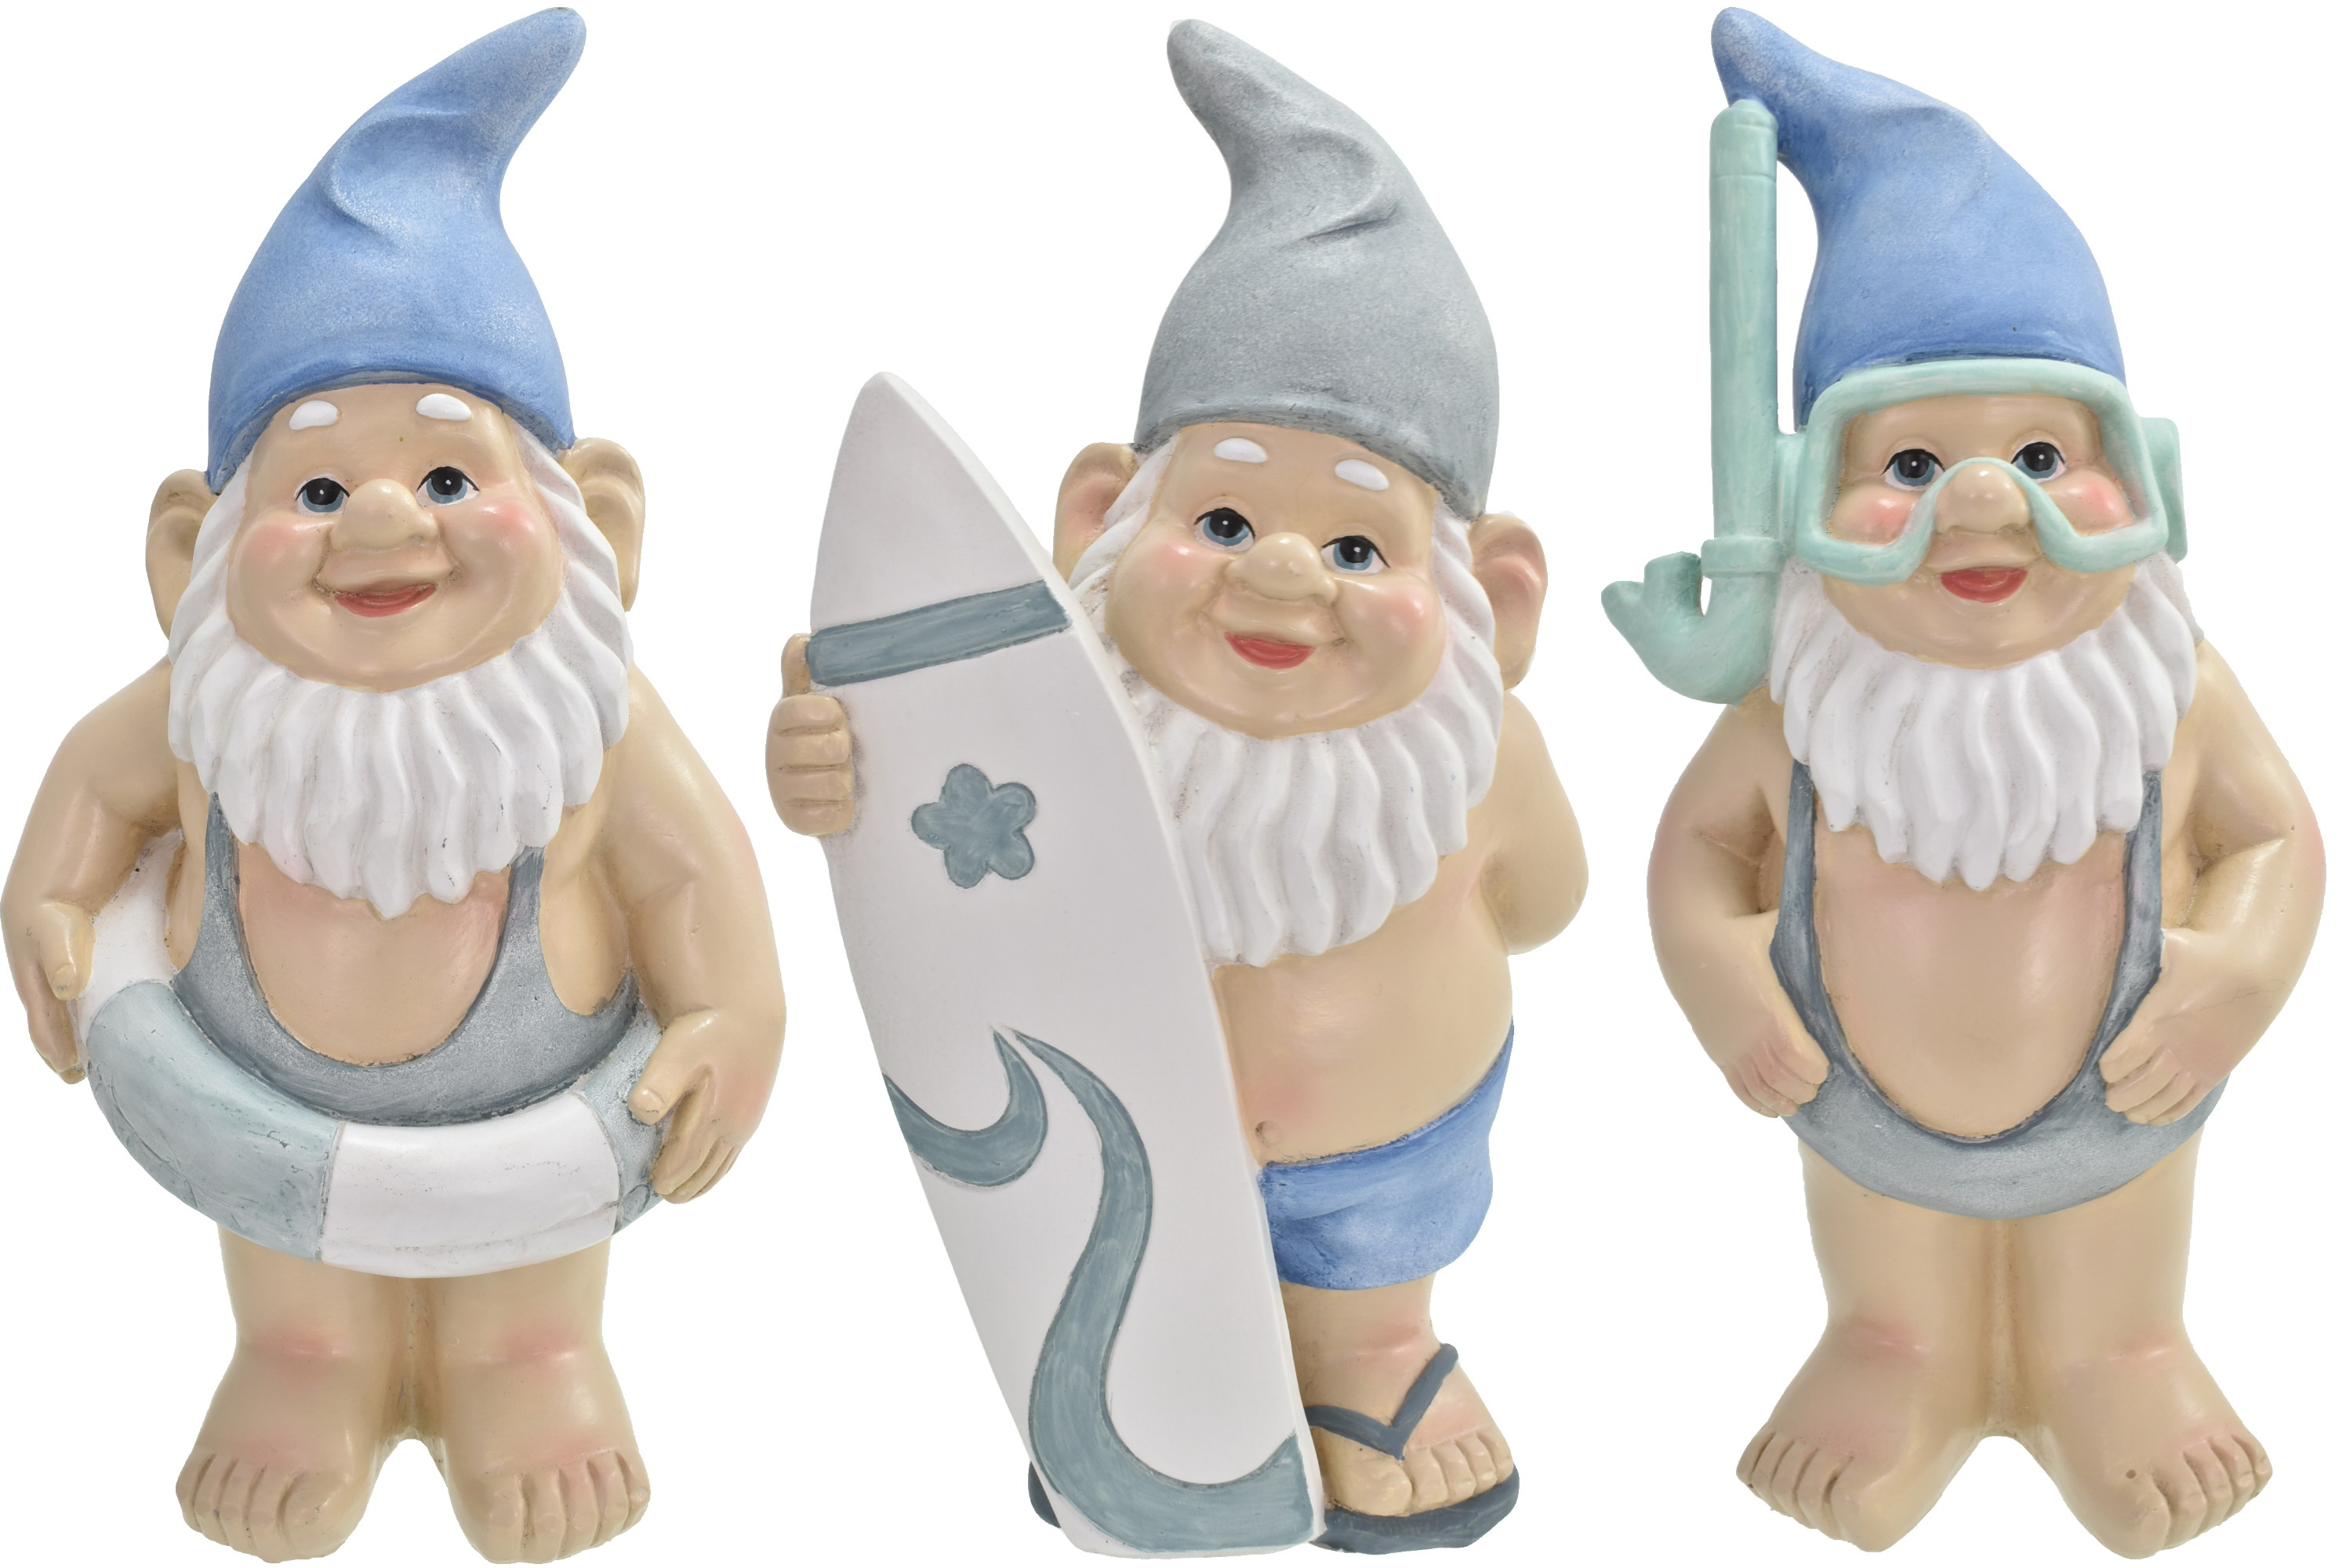 19cm Gnautical Beach Gnome 3 Assorted Designs